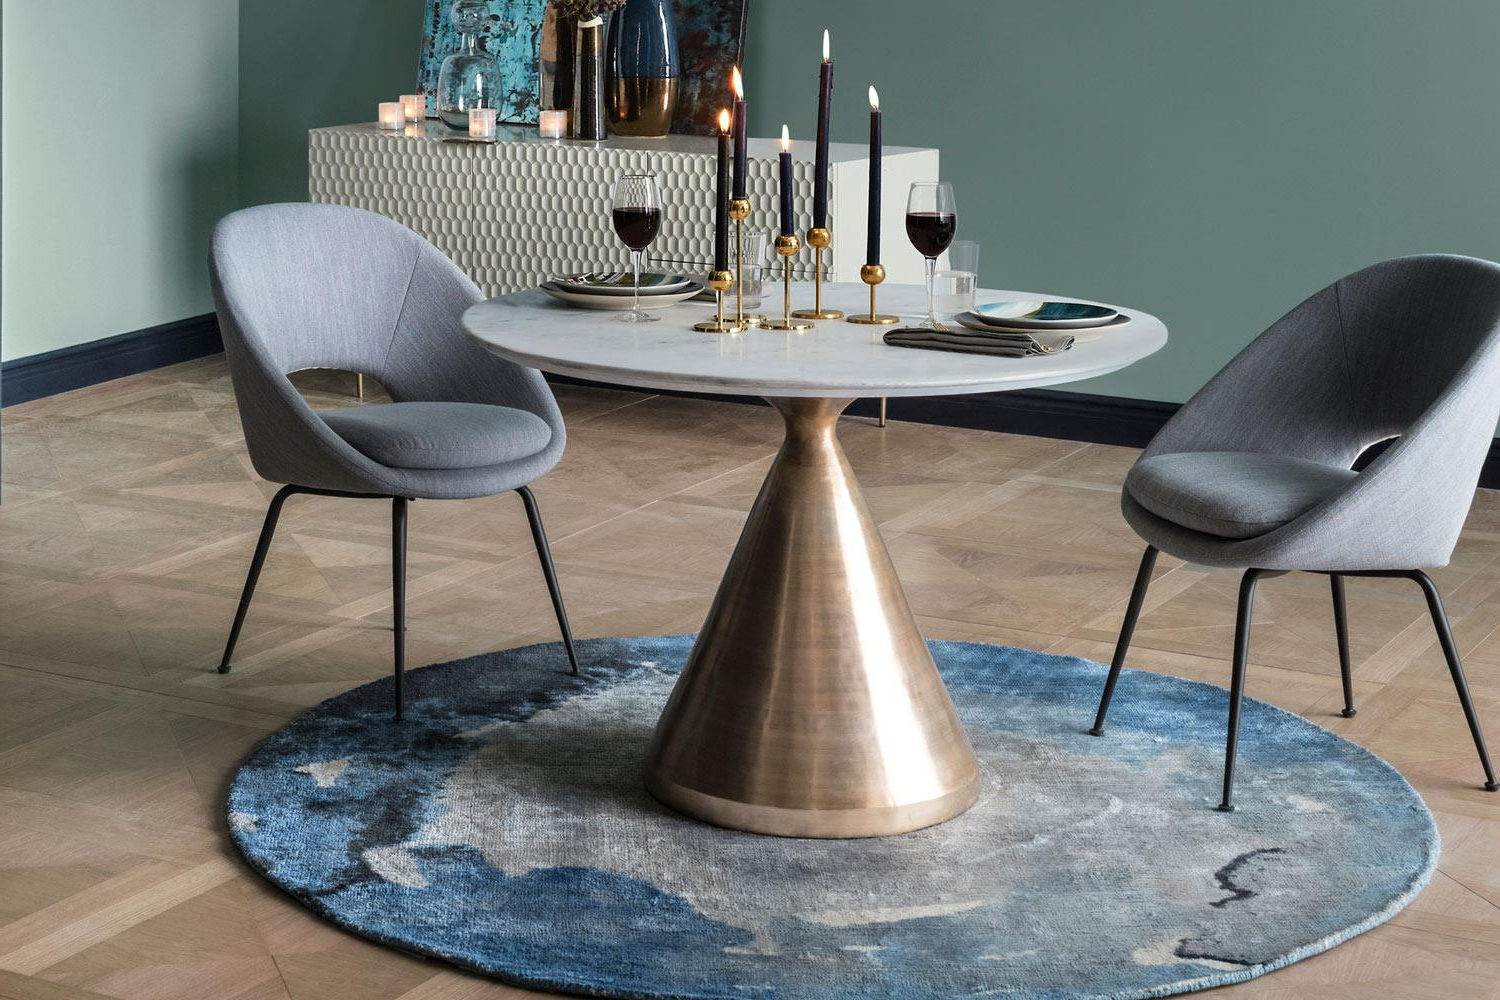 Best Dining Tables: The Best Stylish Dining Room Tables 2019 Inside Favorite Acacia Wood Top Dining Tables With Iron Legs On Raw Metal (View 7 of 25)